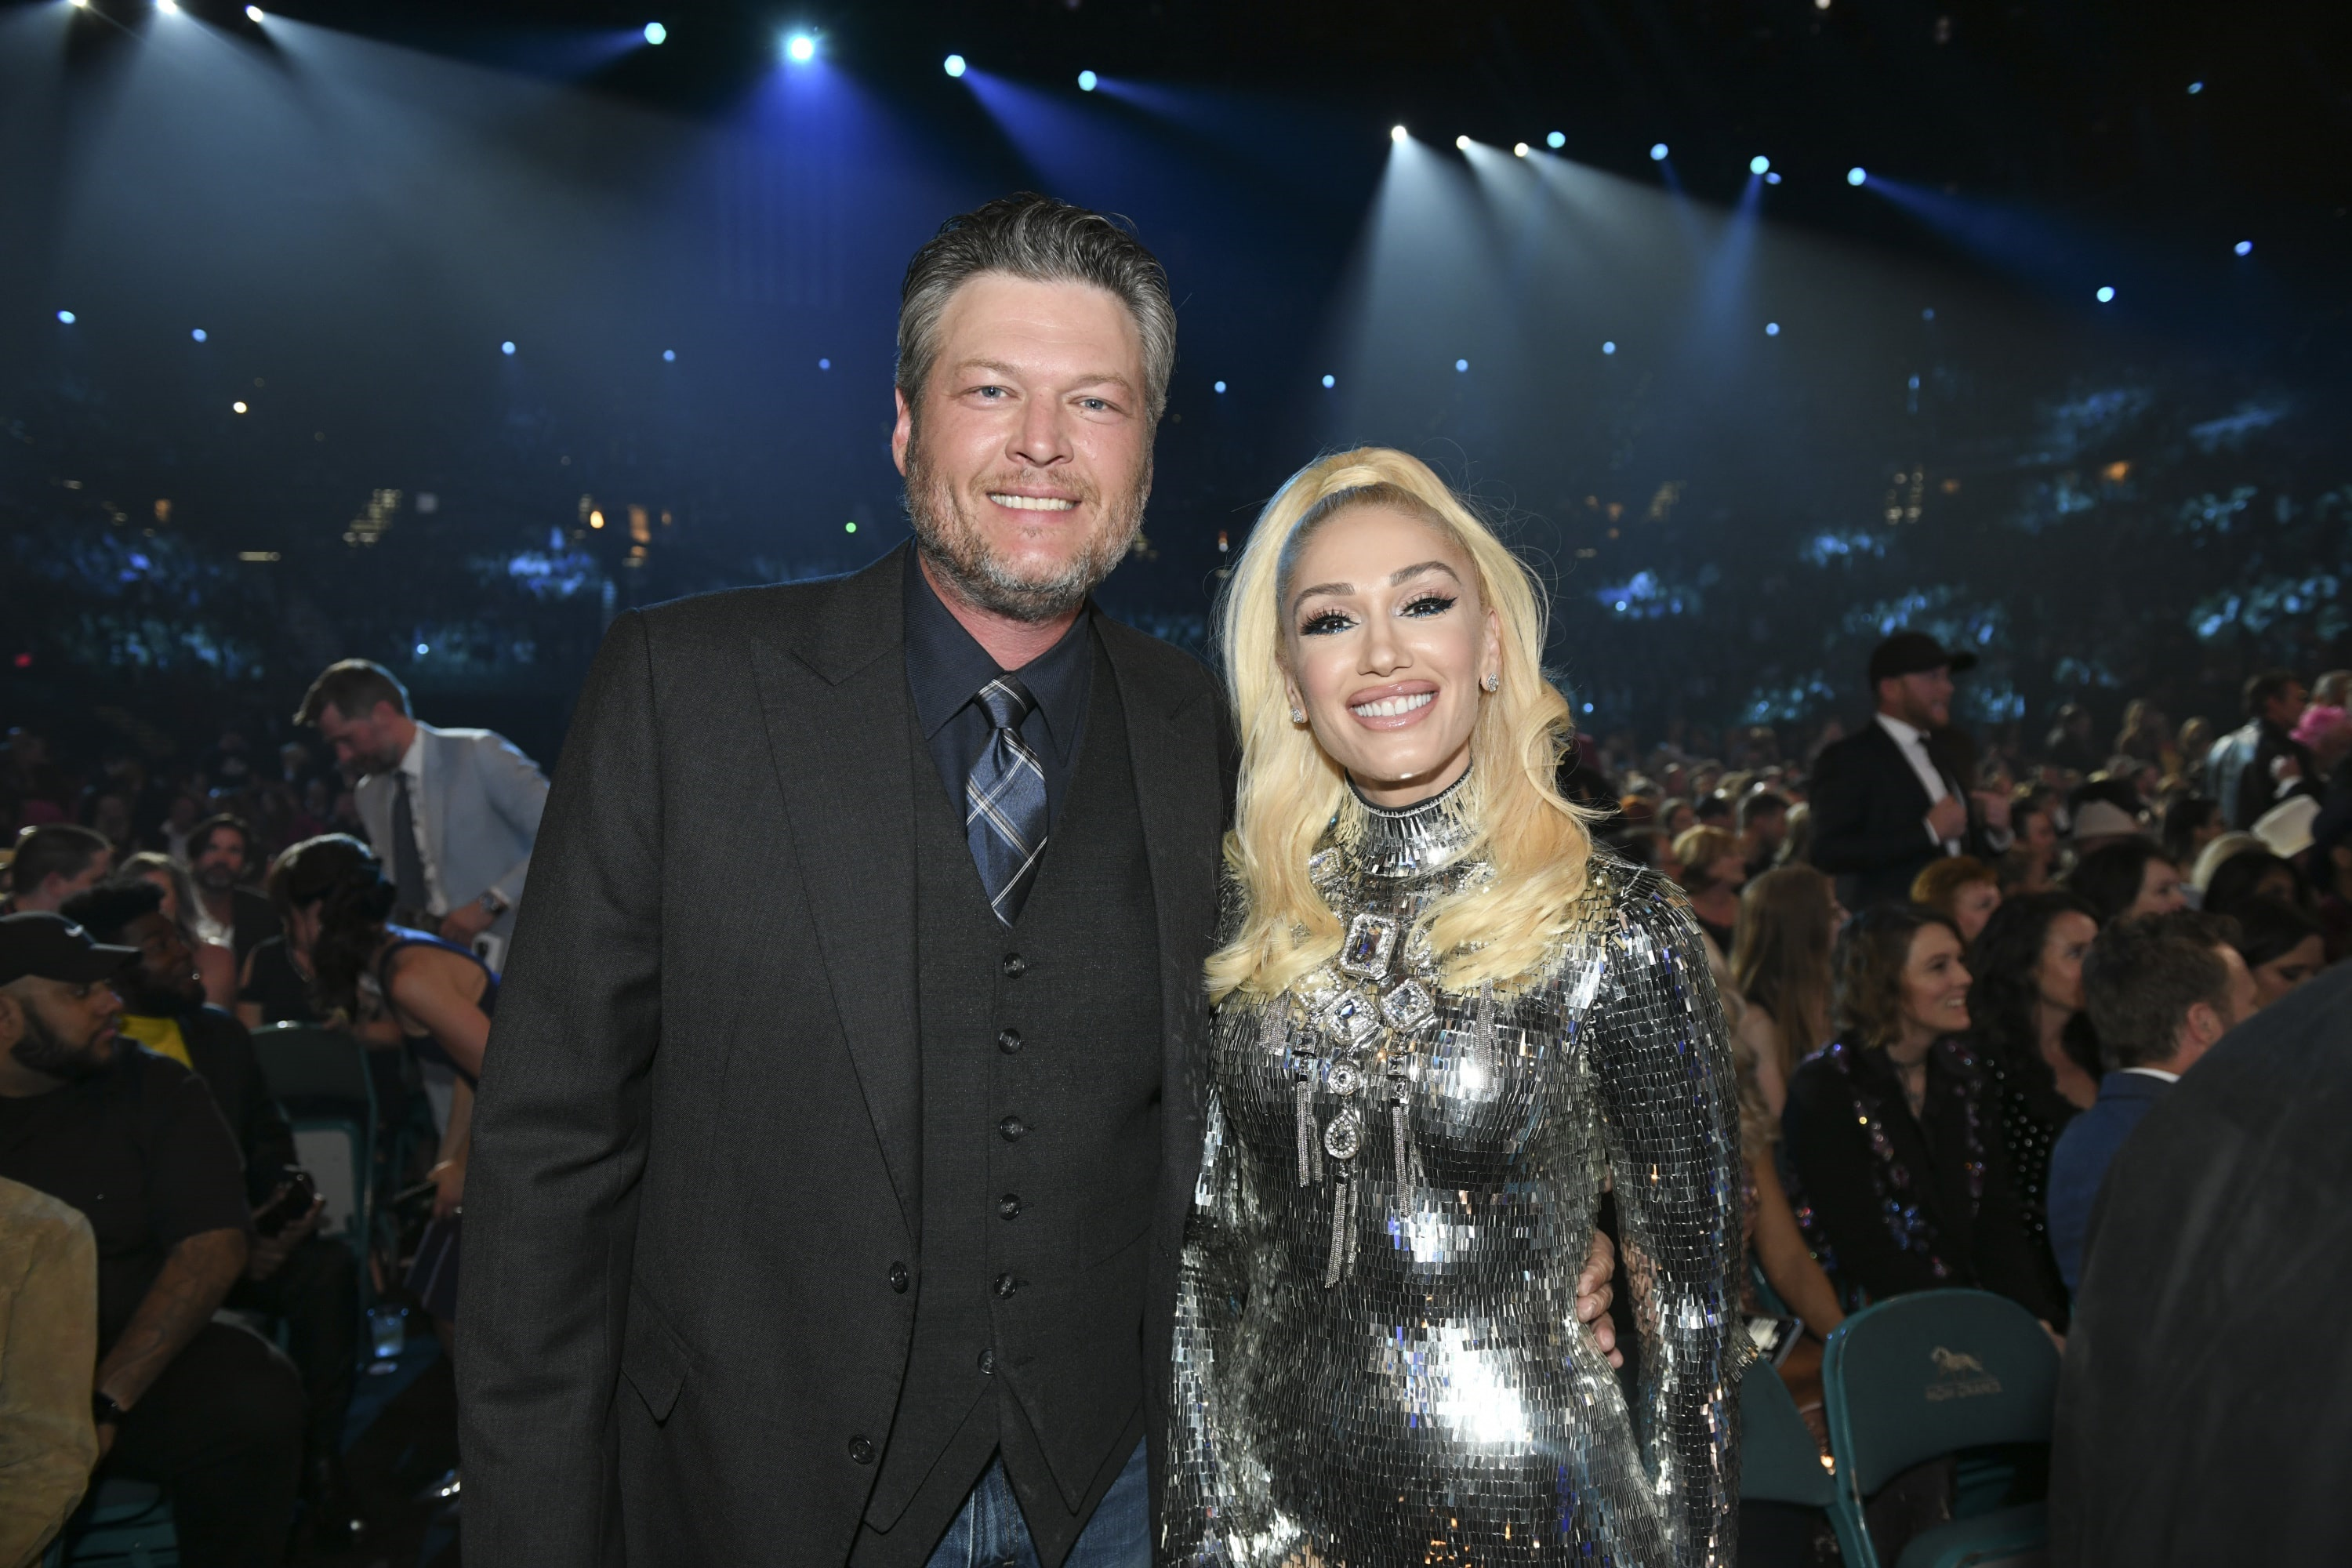 Blake Shelton and Gwen Stefani during the 54TH ACADEMY OF COUNTRY MUSIC AWARDS, to broadcast LIVE from MGM Grand Garden Arena in Las Vegas Sunday, April 7, 2019 (8:00-11:00 PM, ET/delayed PT) on the CBS Television Network. Photo: Sam Morris/CBS ©2019 CBS Broadcasting, Inc. All Rights Reserved